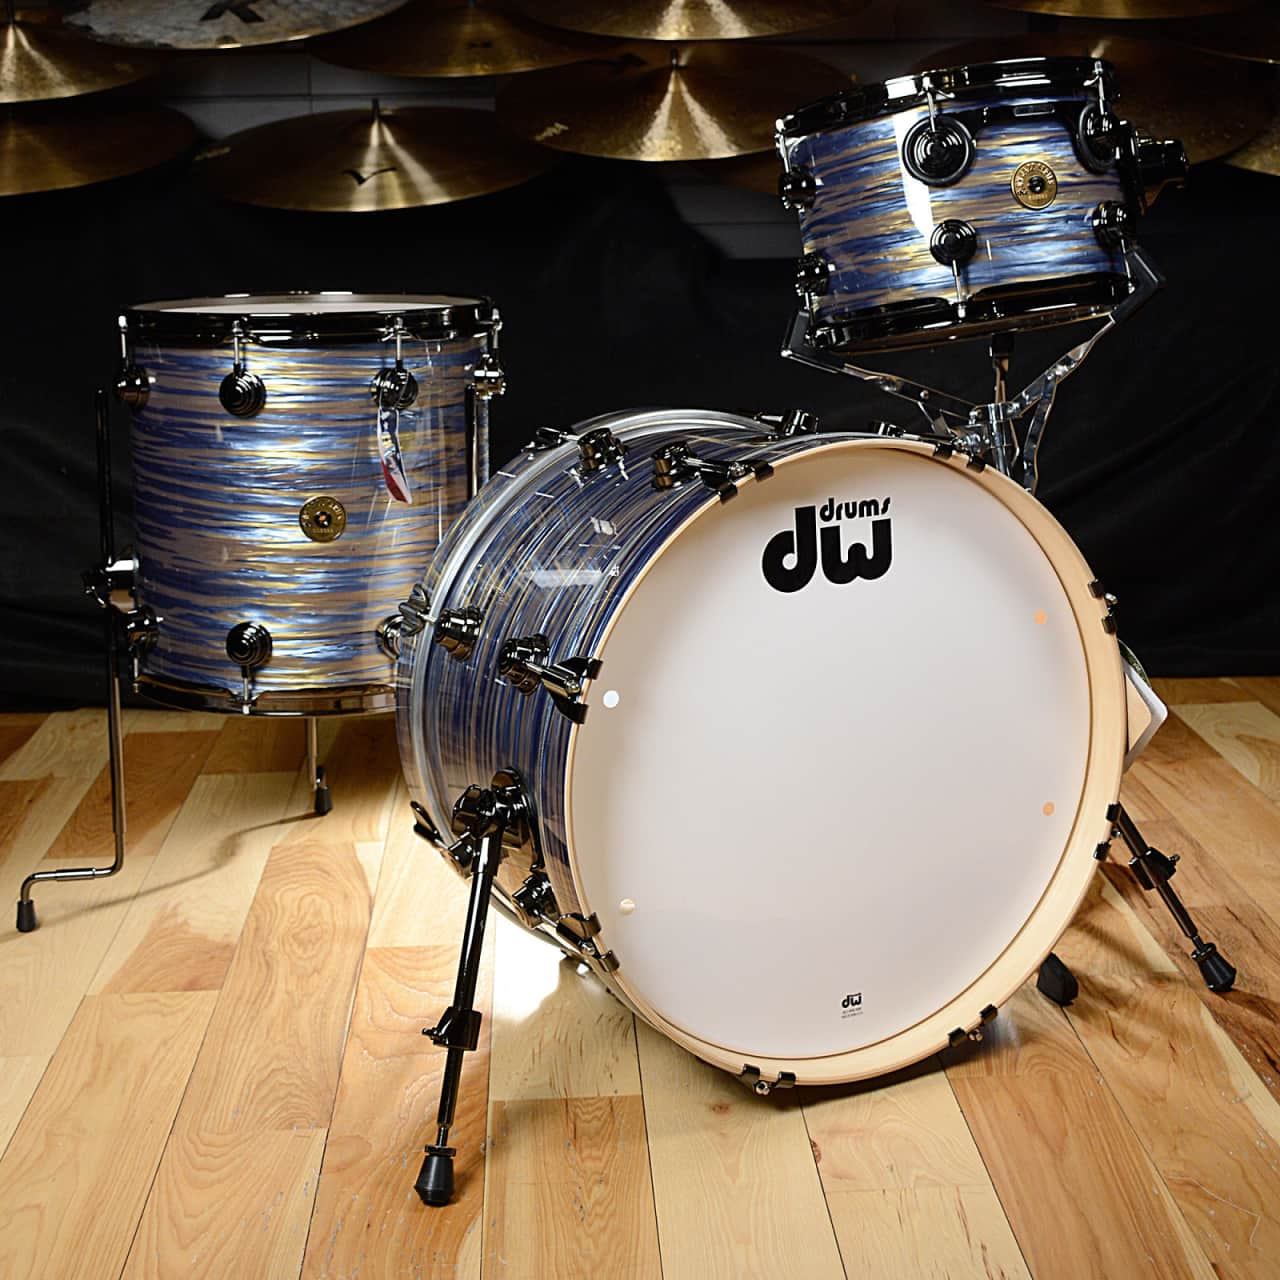 dw jazz series maple gum 12 14 20x12 3pc drum kit peacock reverb. Black Bedroom Furniture Sets. Home Design Ideas